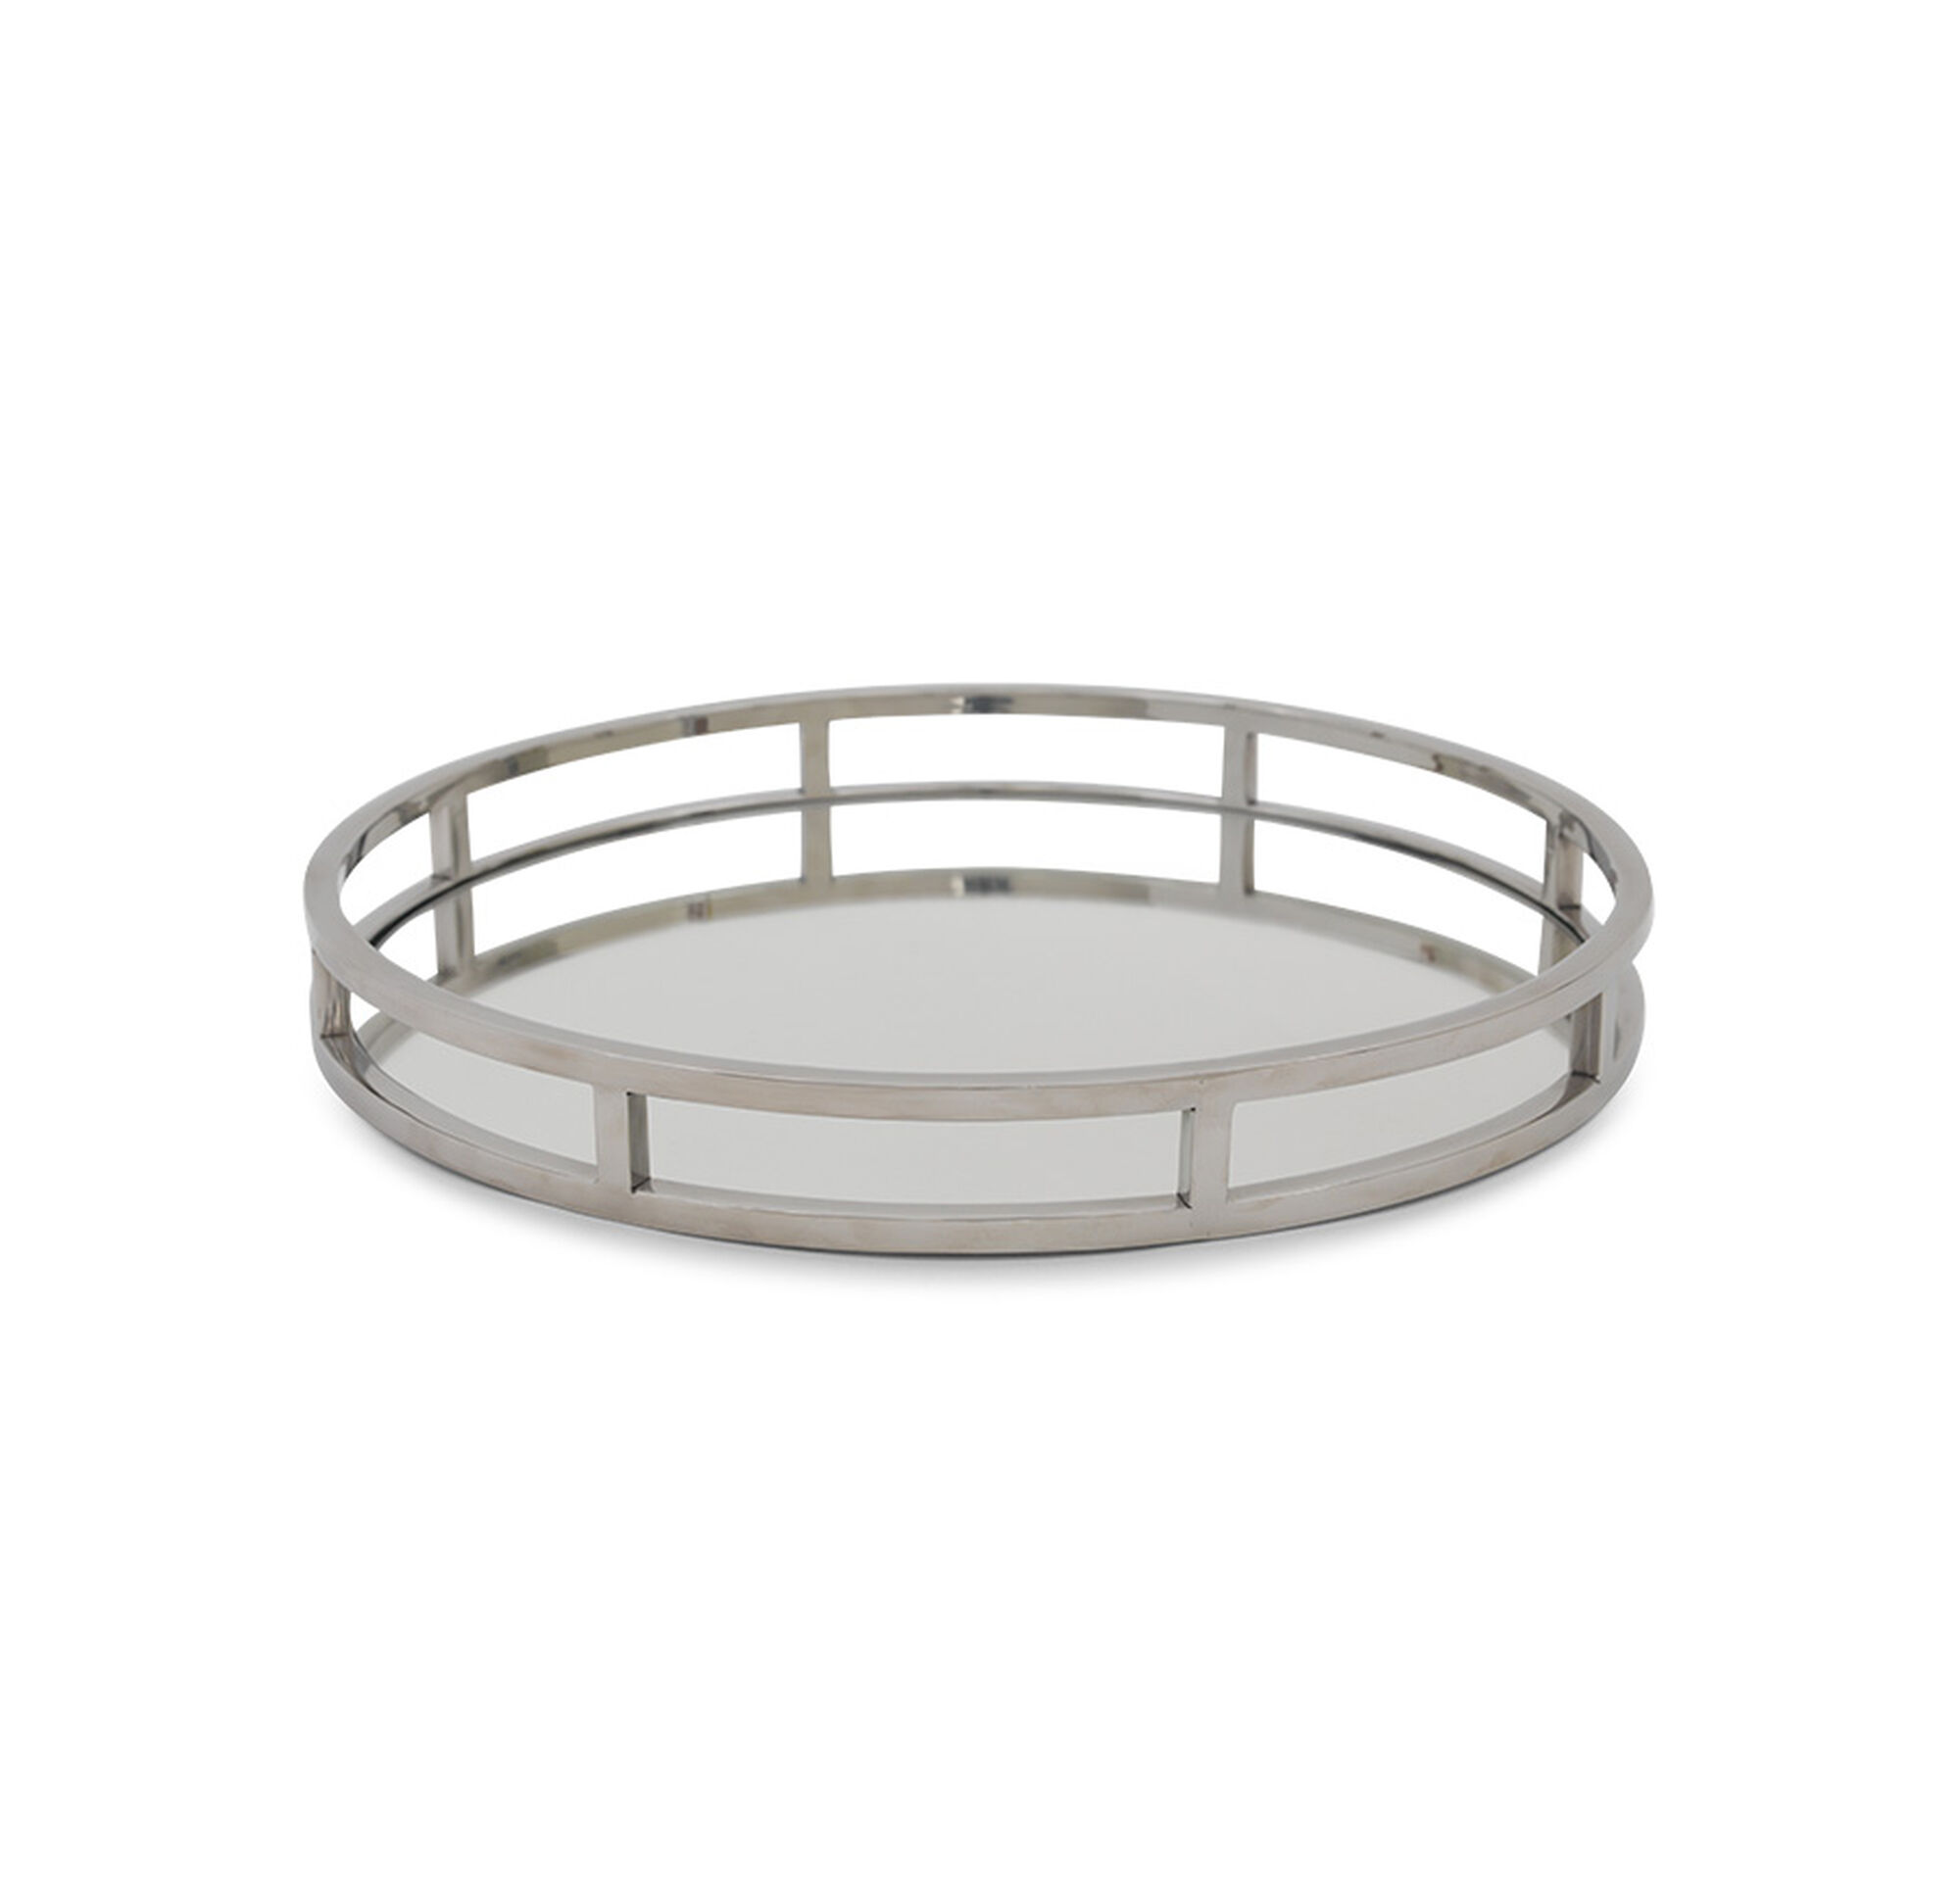 American Atelier Round Mirror Tray Alternate Images